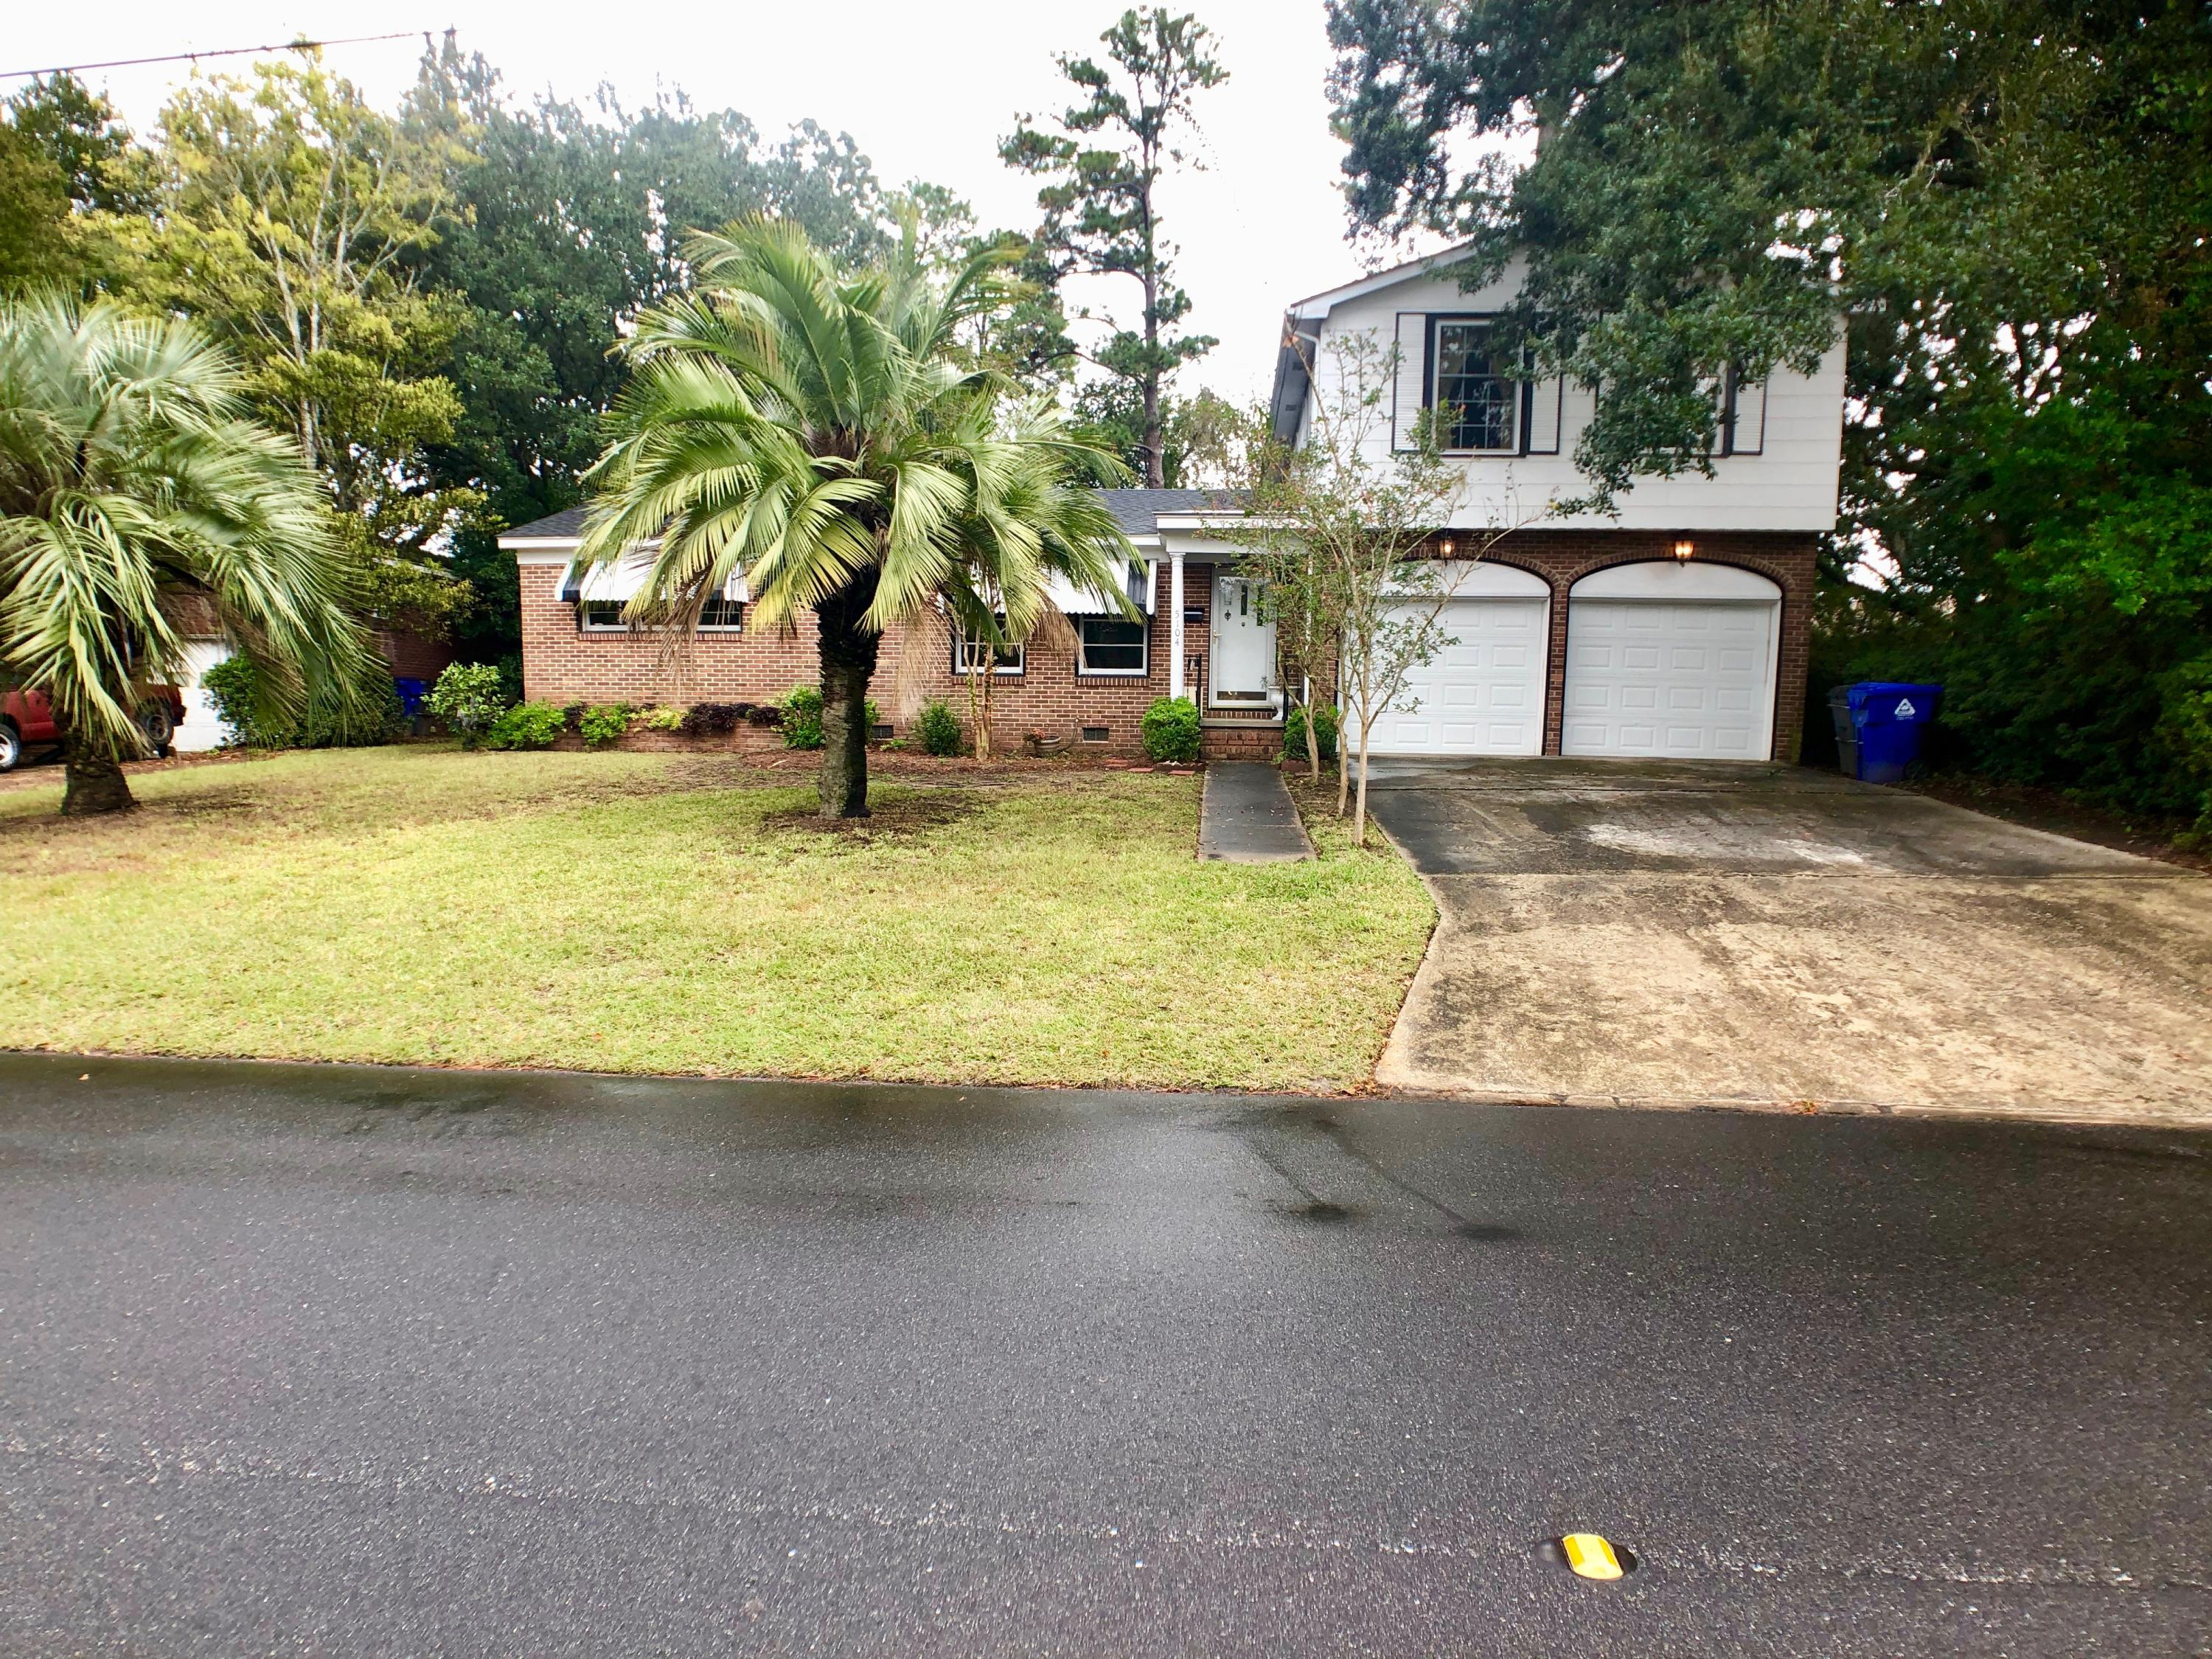 Photo of 5104 Princeton St, North Charleston, SC 29405